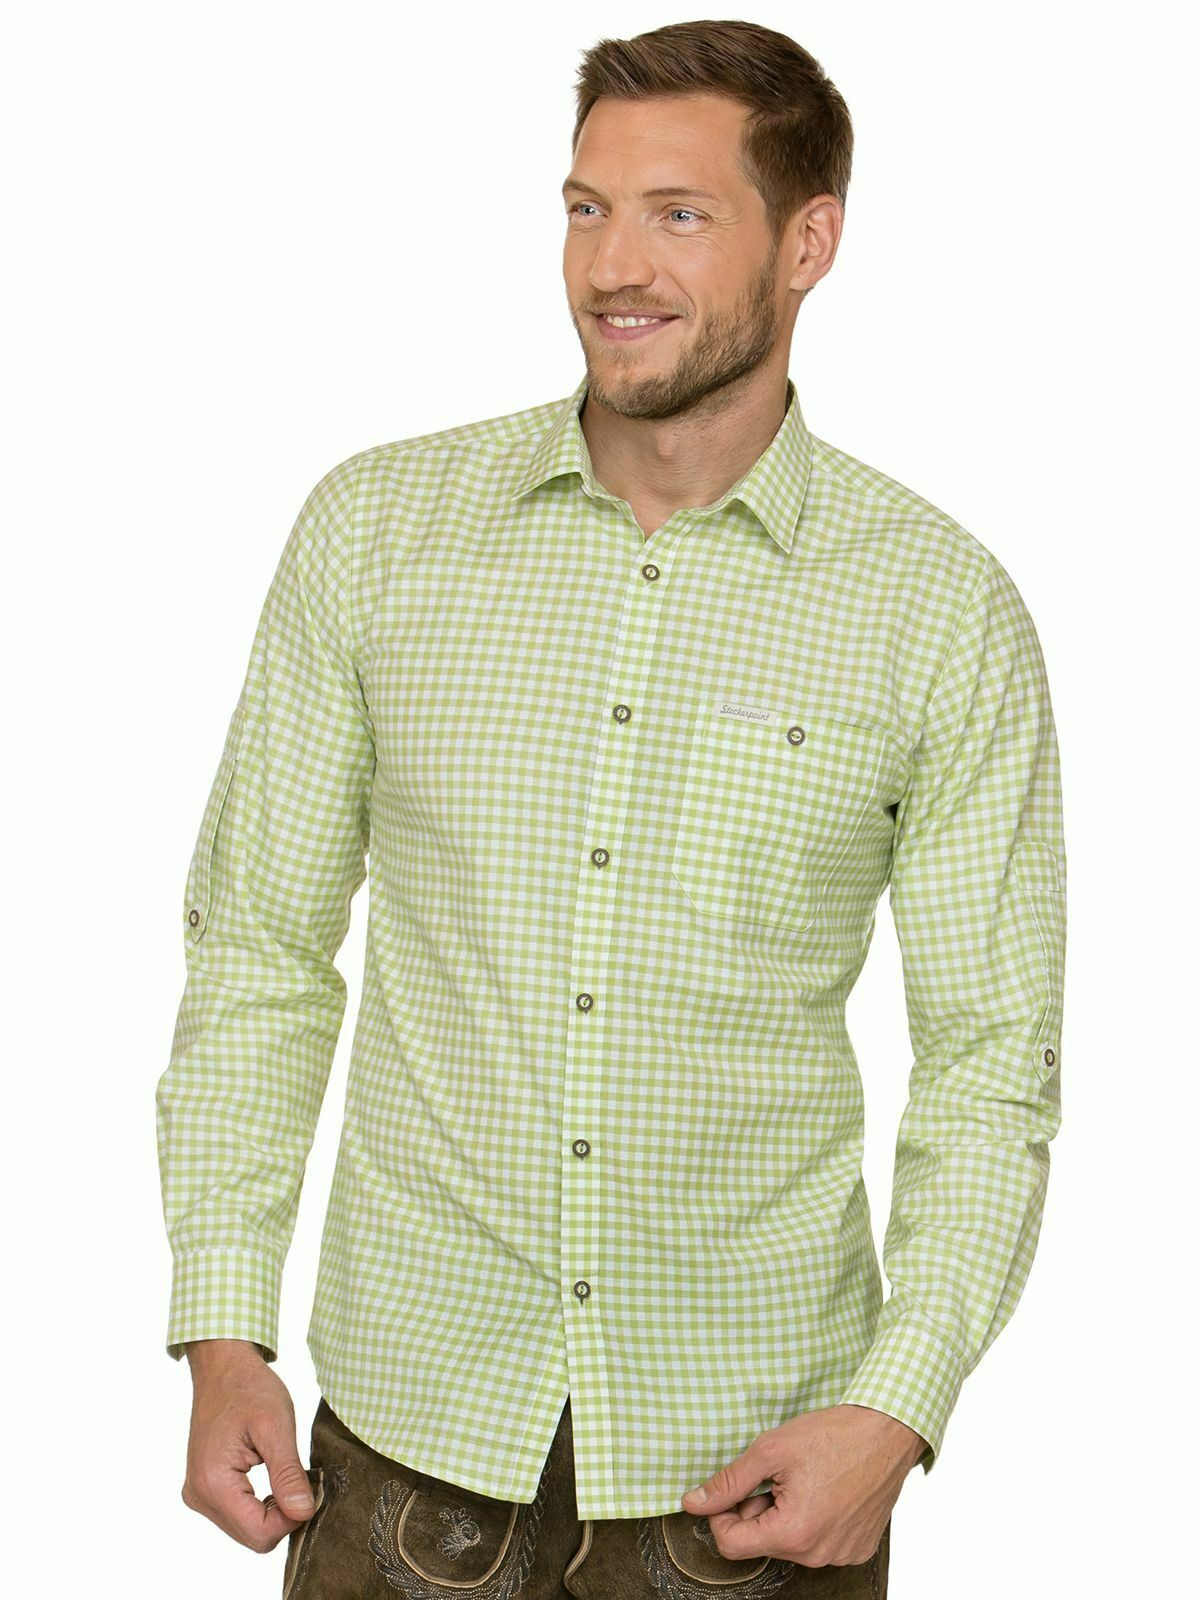 Stockerpoint Traditional Shirt Long Sleeve Comfort Fit Campos3 Apple